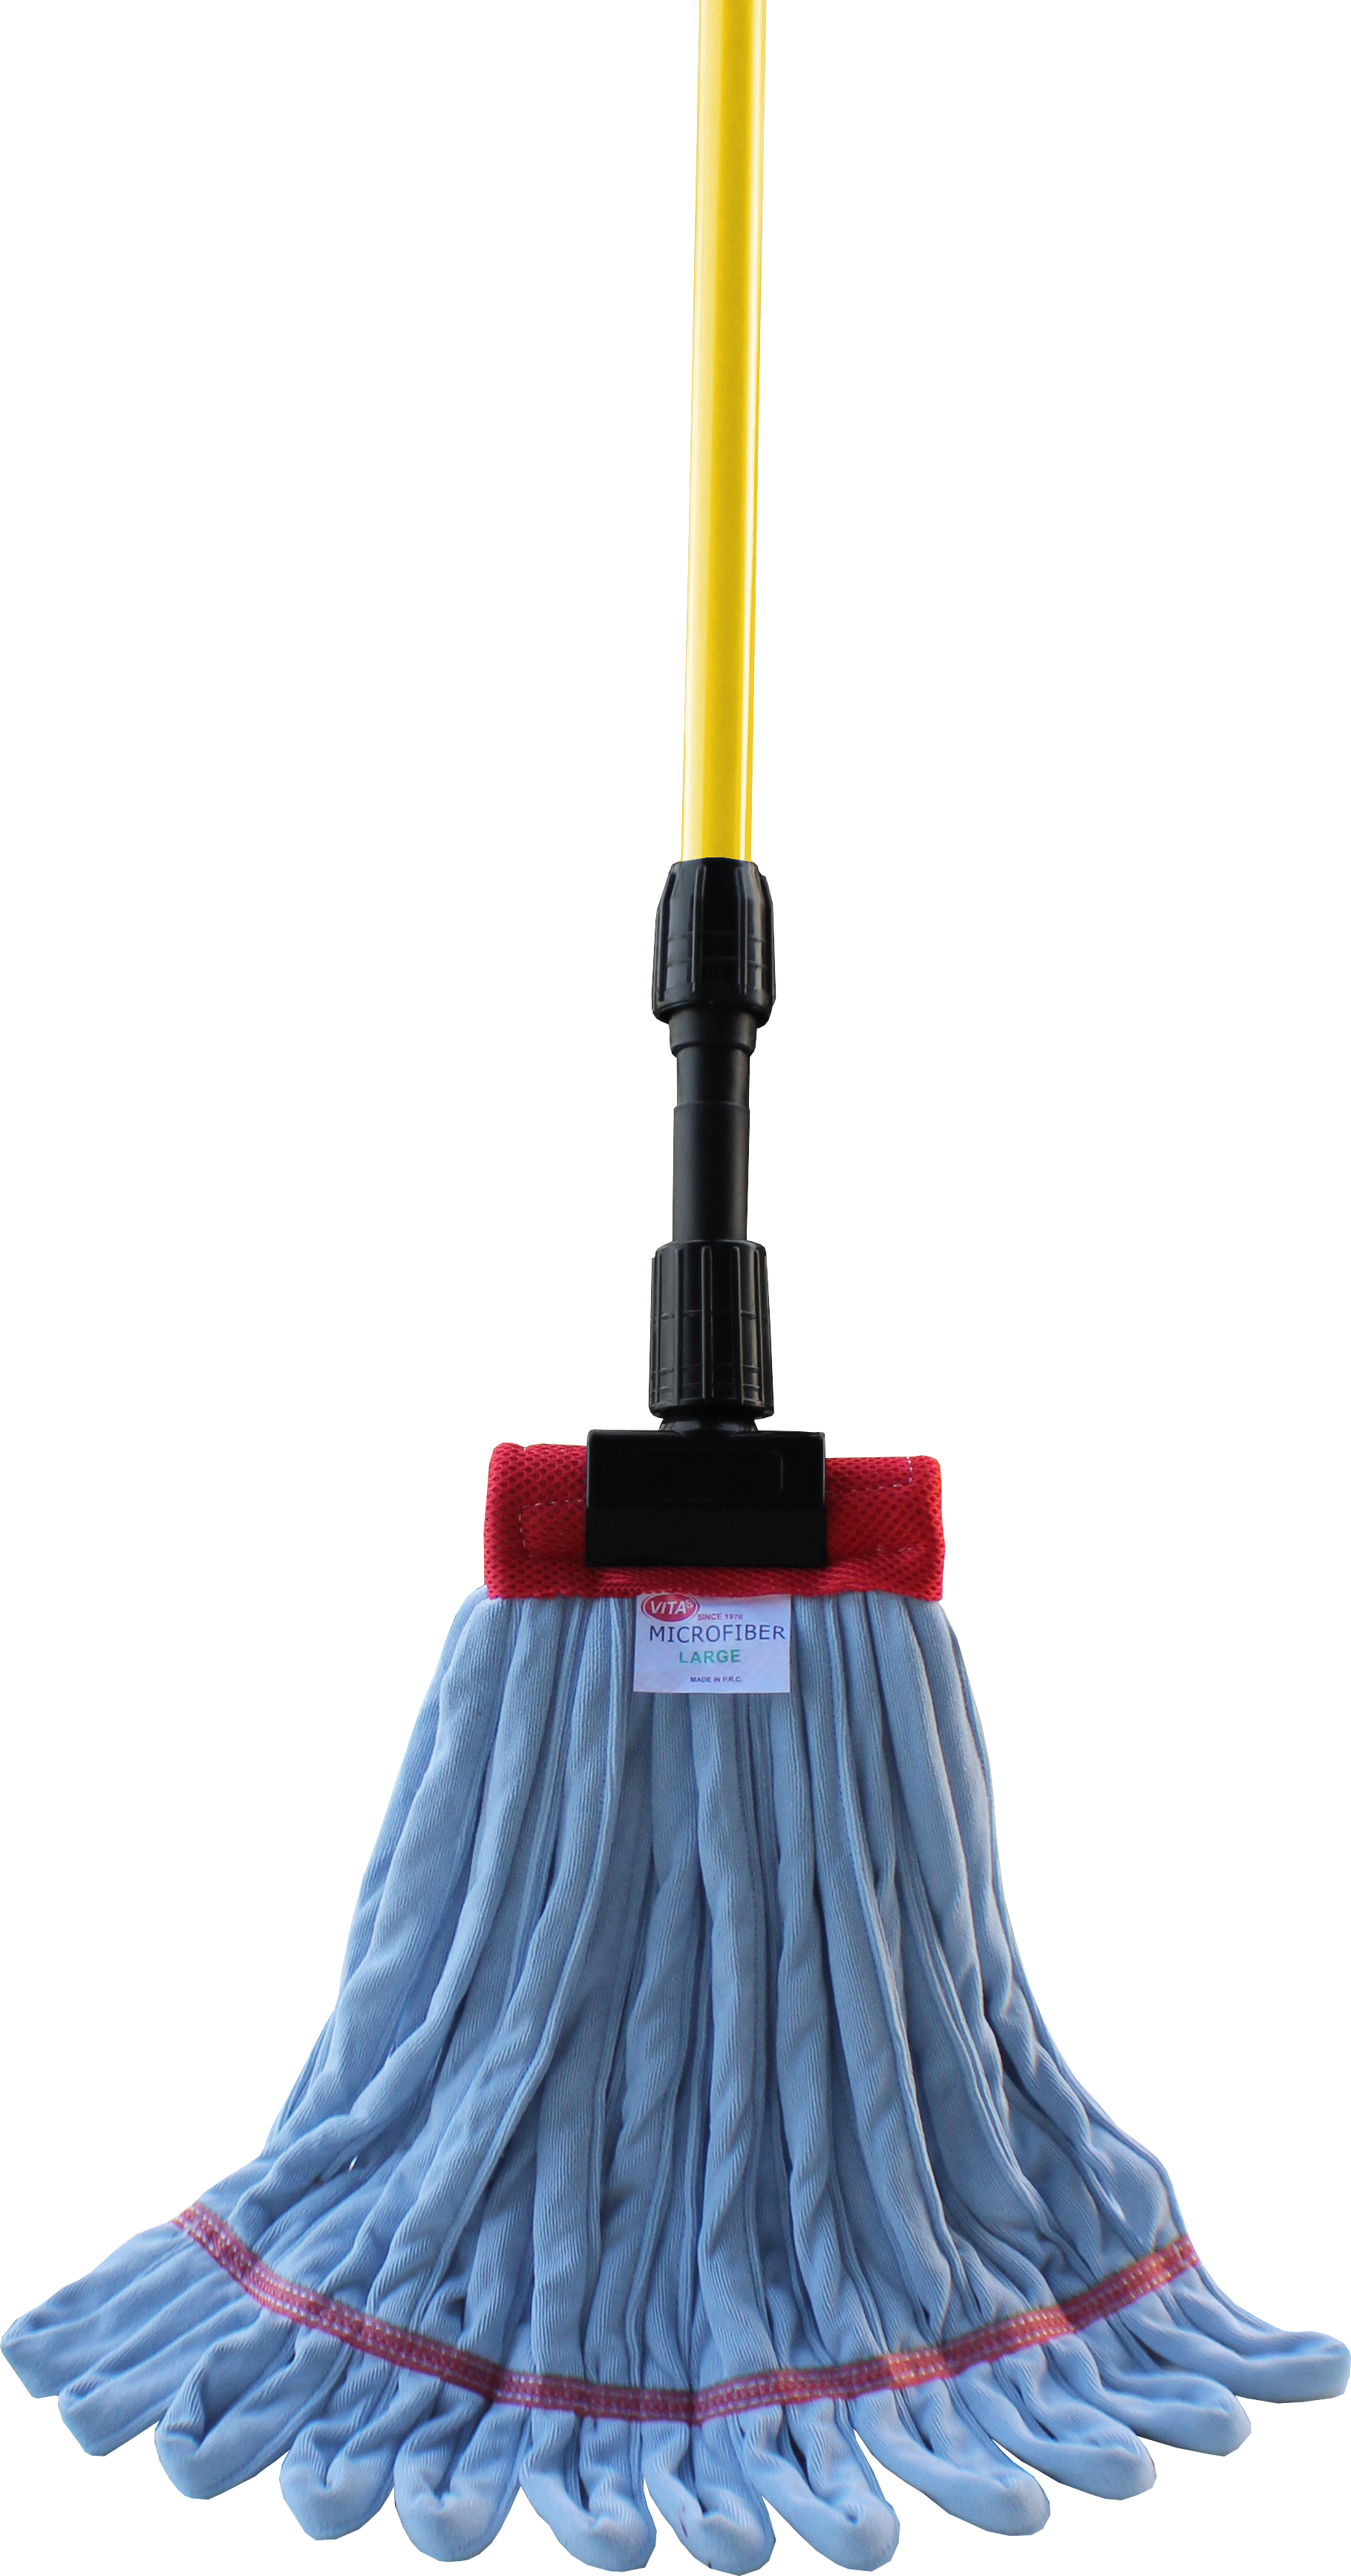 Microfiber Cloth Mop Microfiber Cloths Wet Mops